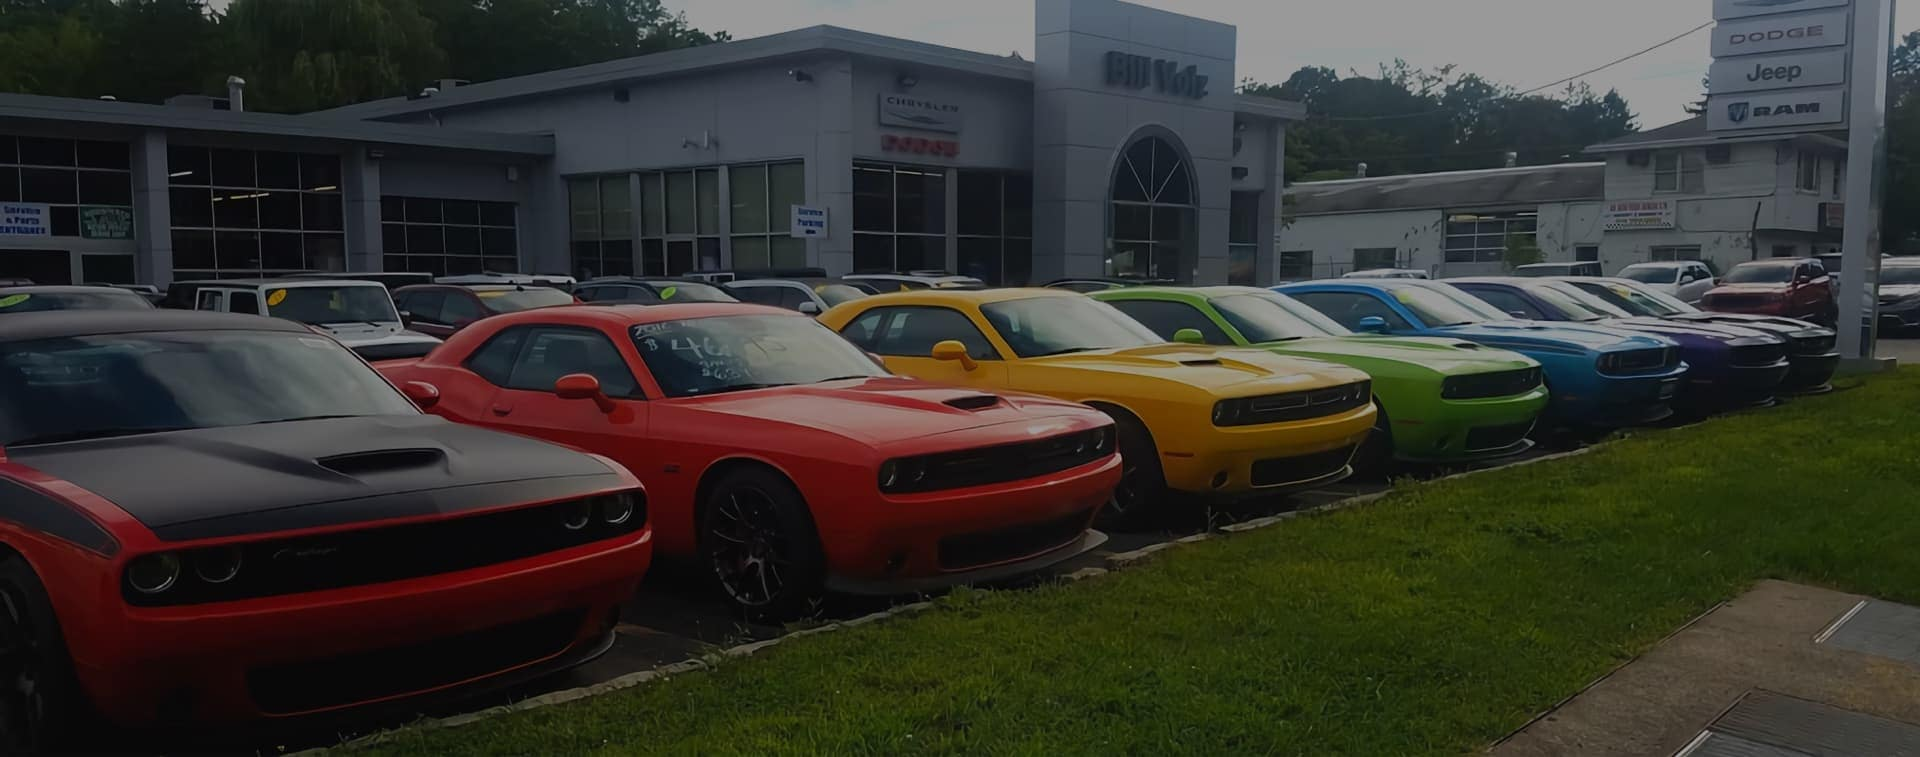 Bill Volz's Westchester Dealership